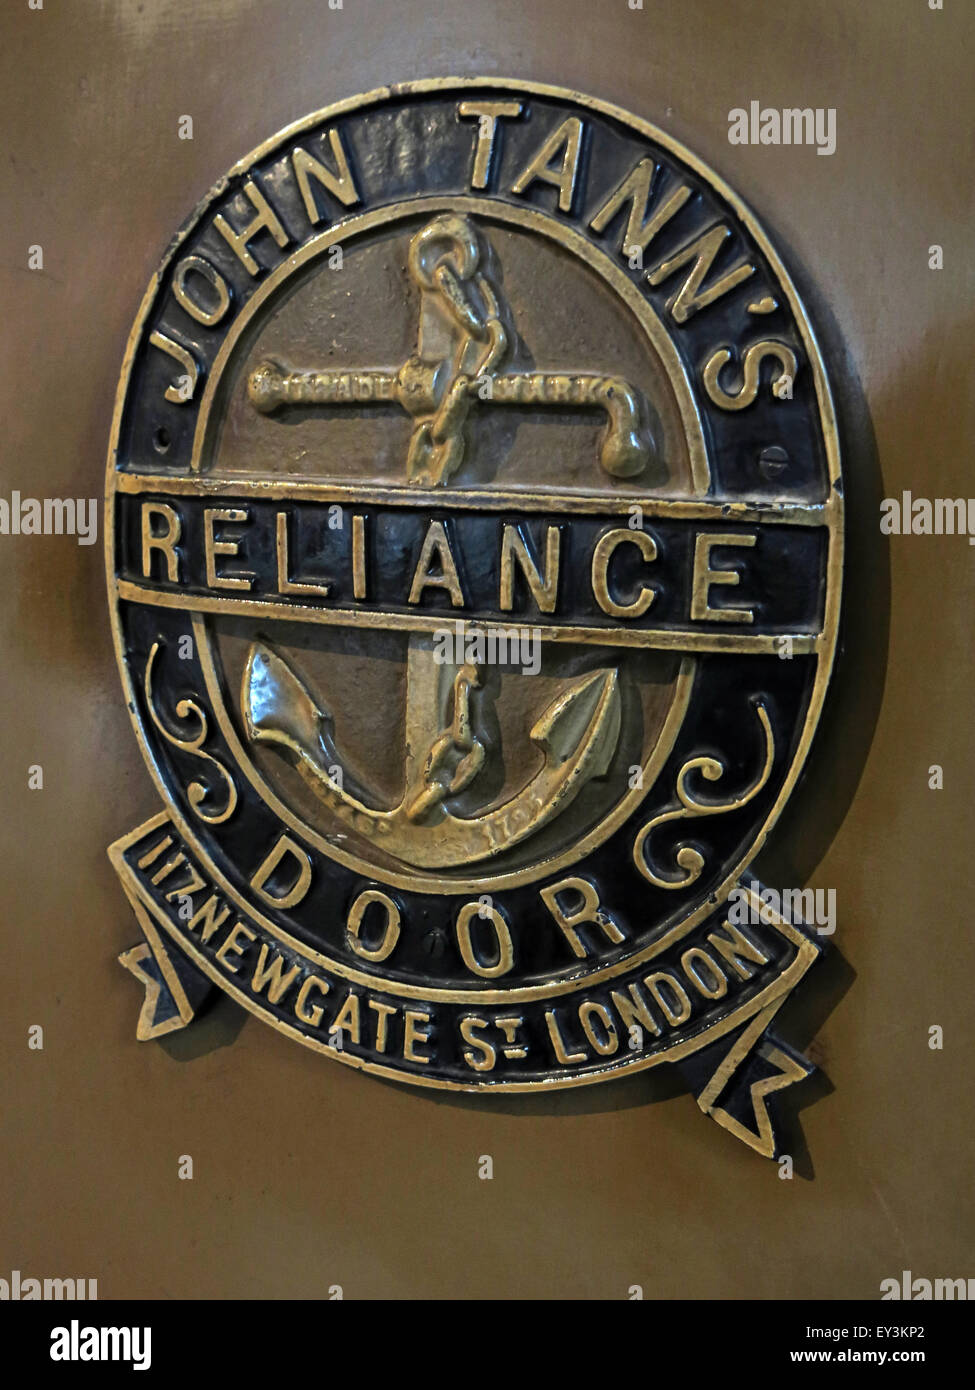 John Tanns safe, Reliance Door, 117 Newgate St, London, England, UK Stock Photo